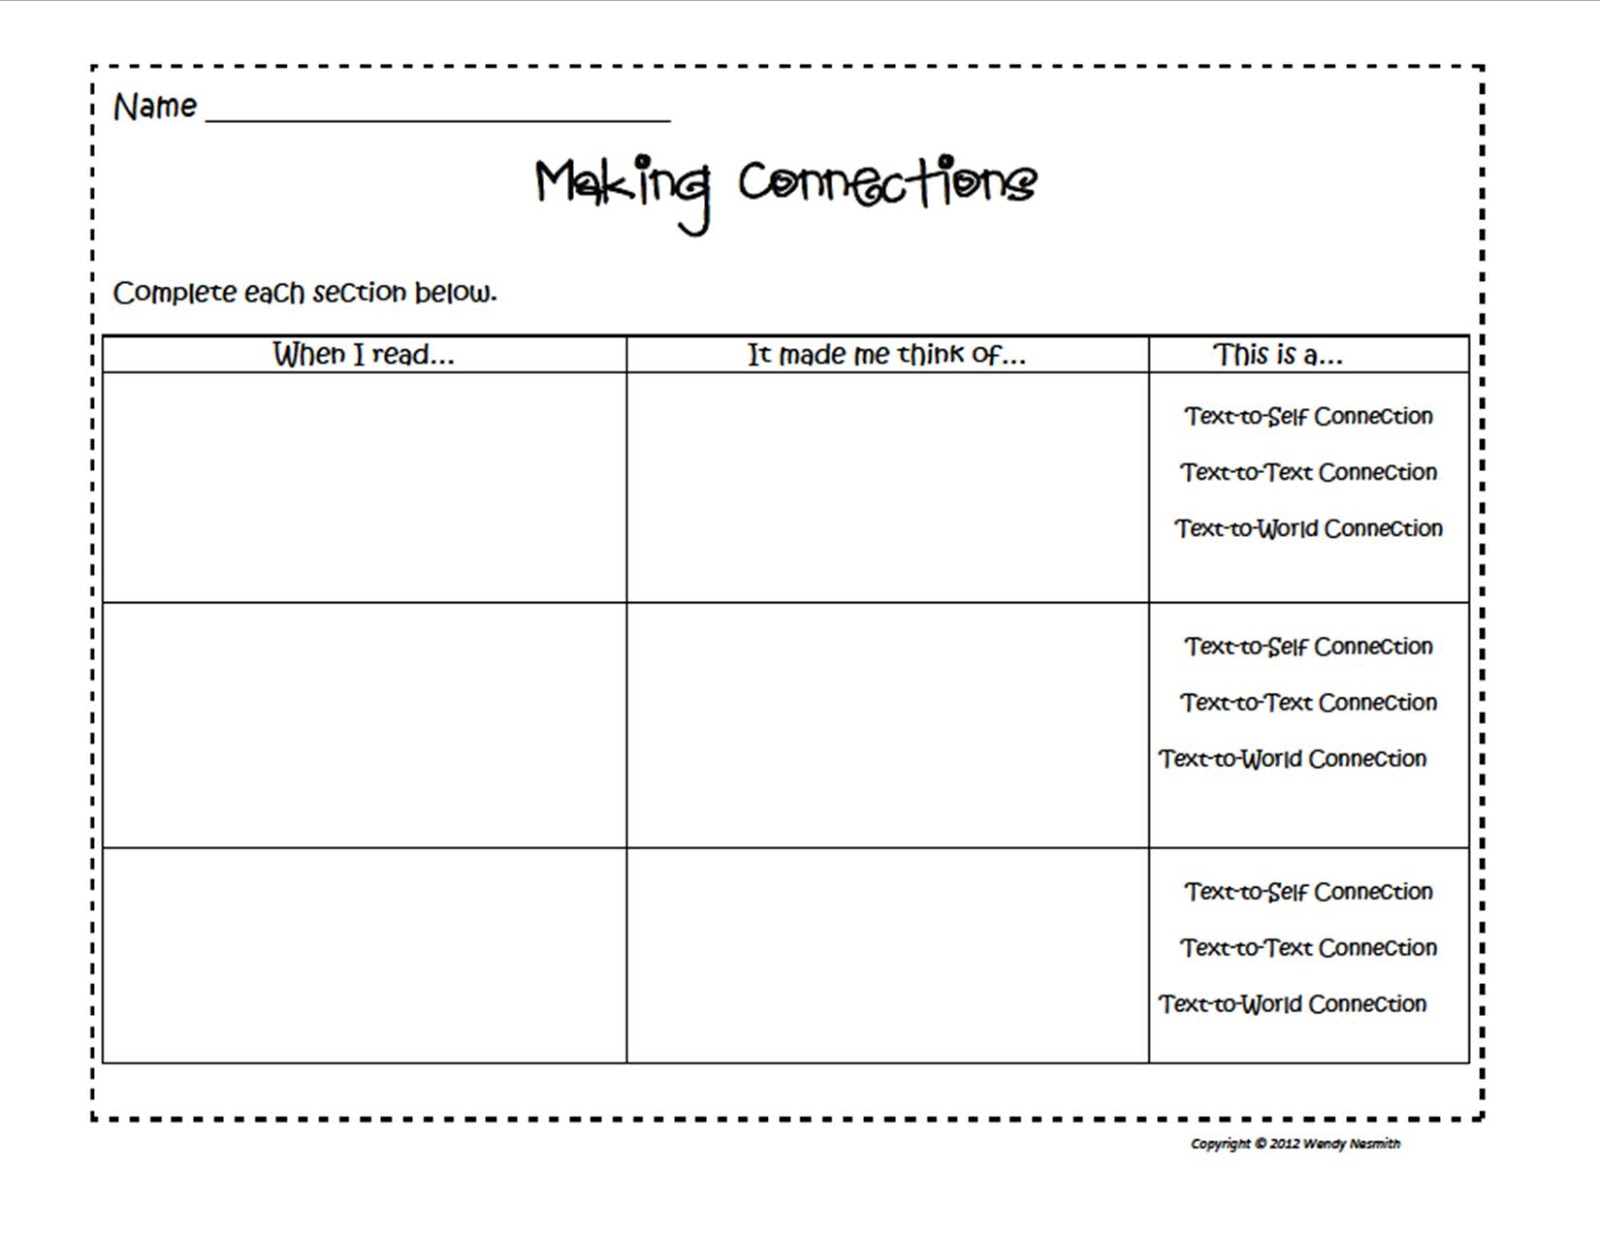 text connections worksheet free worksheets library download and print worksheets free on. Black Bedroom Furniture Sets. Home Design Ideas